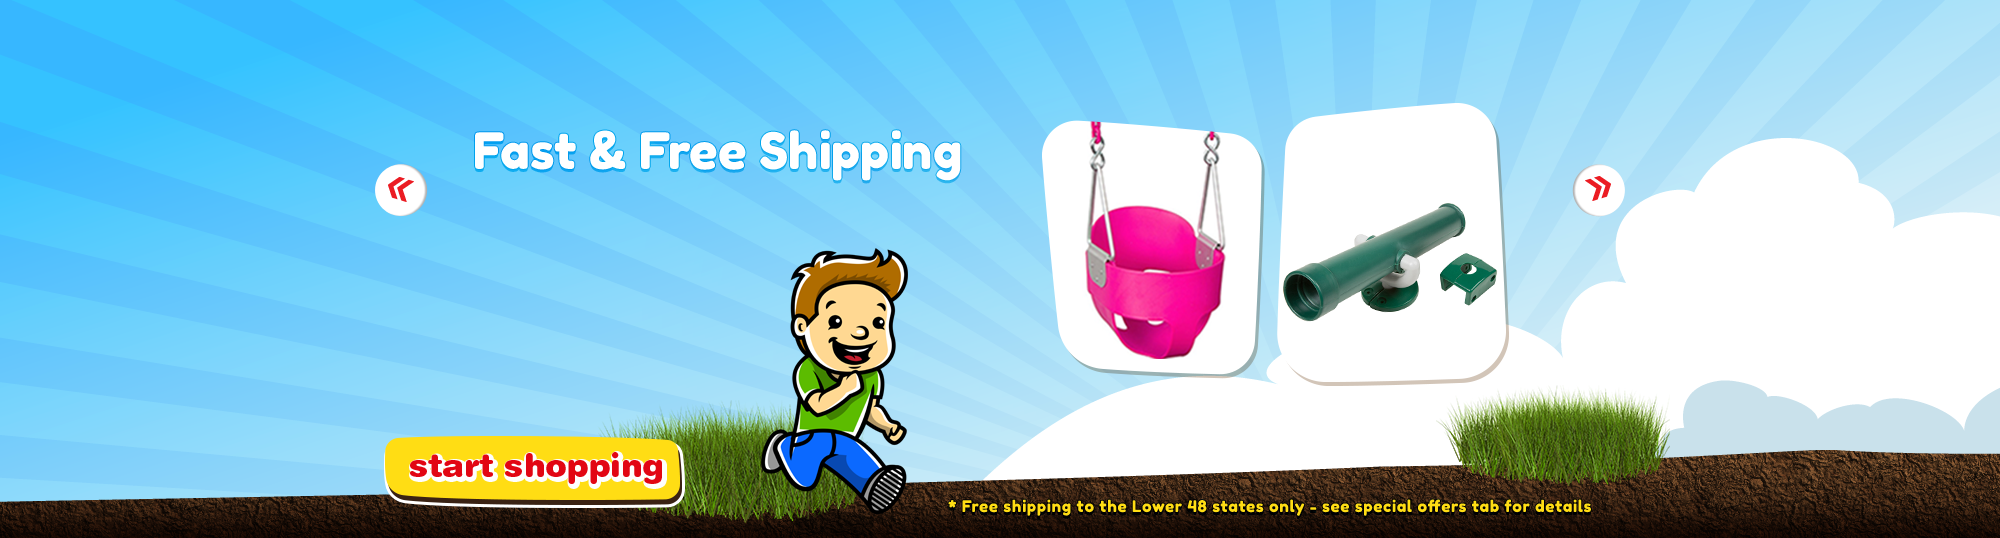 * Free shipping to the Lower 48 states only - see special offers tab for details